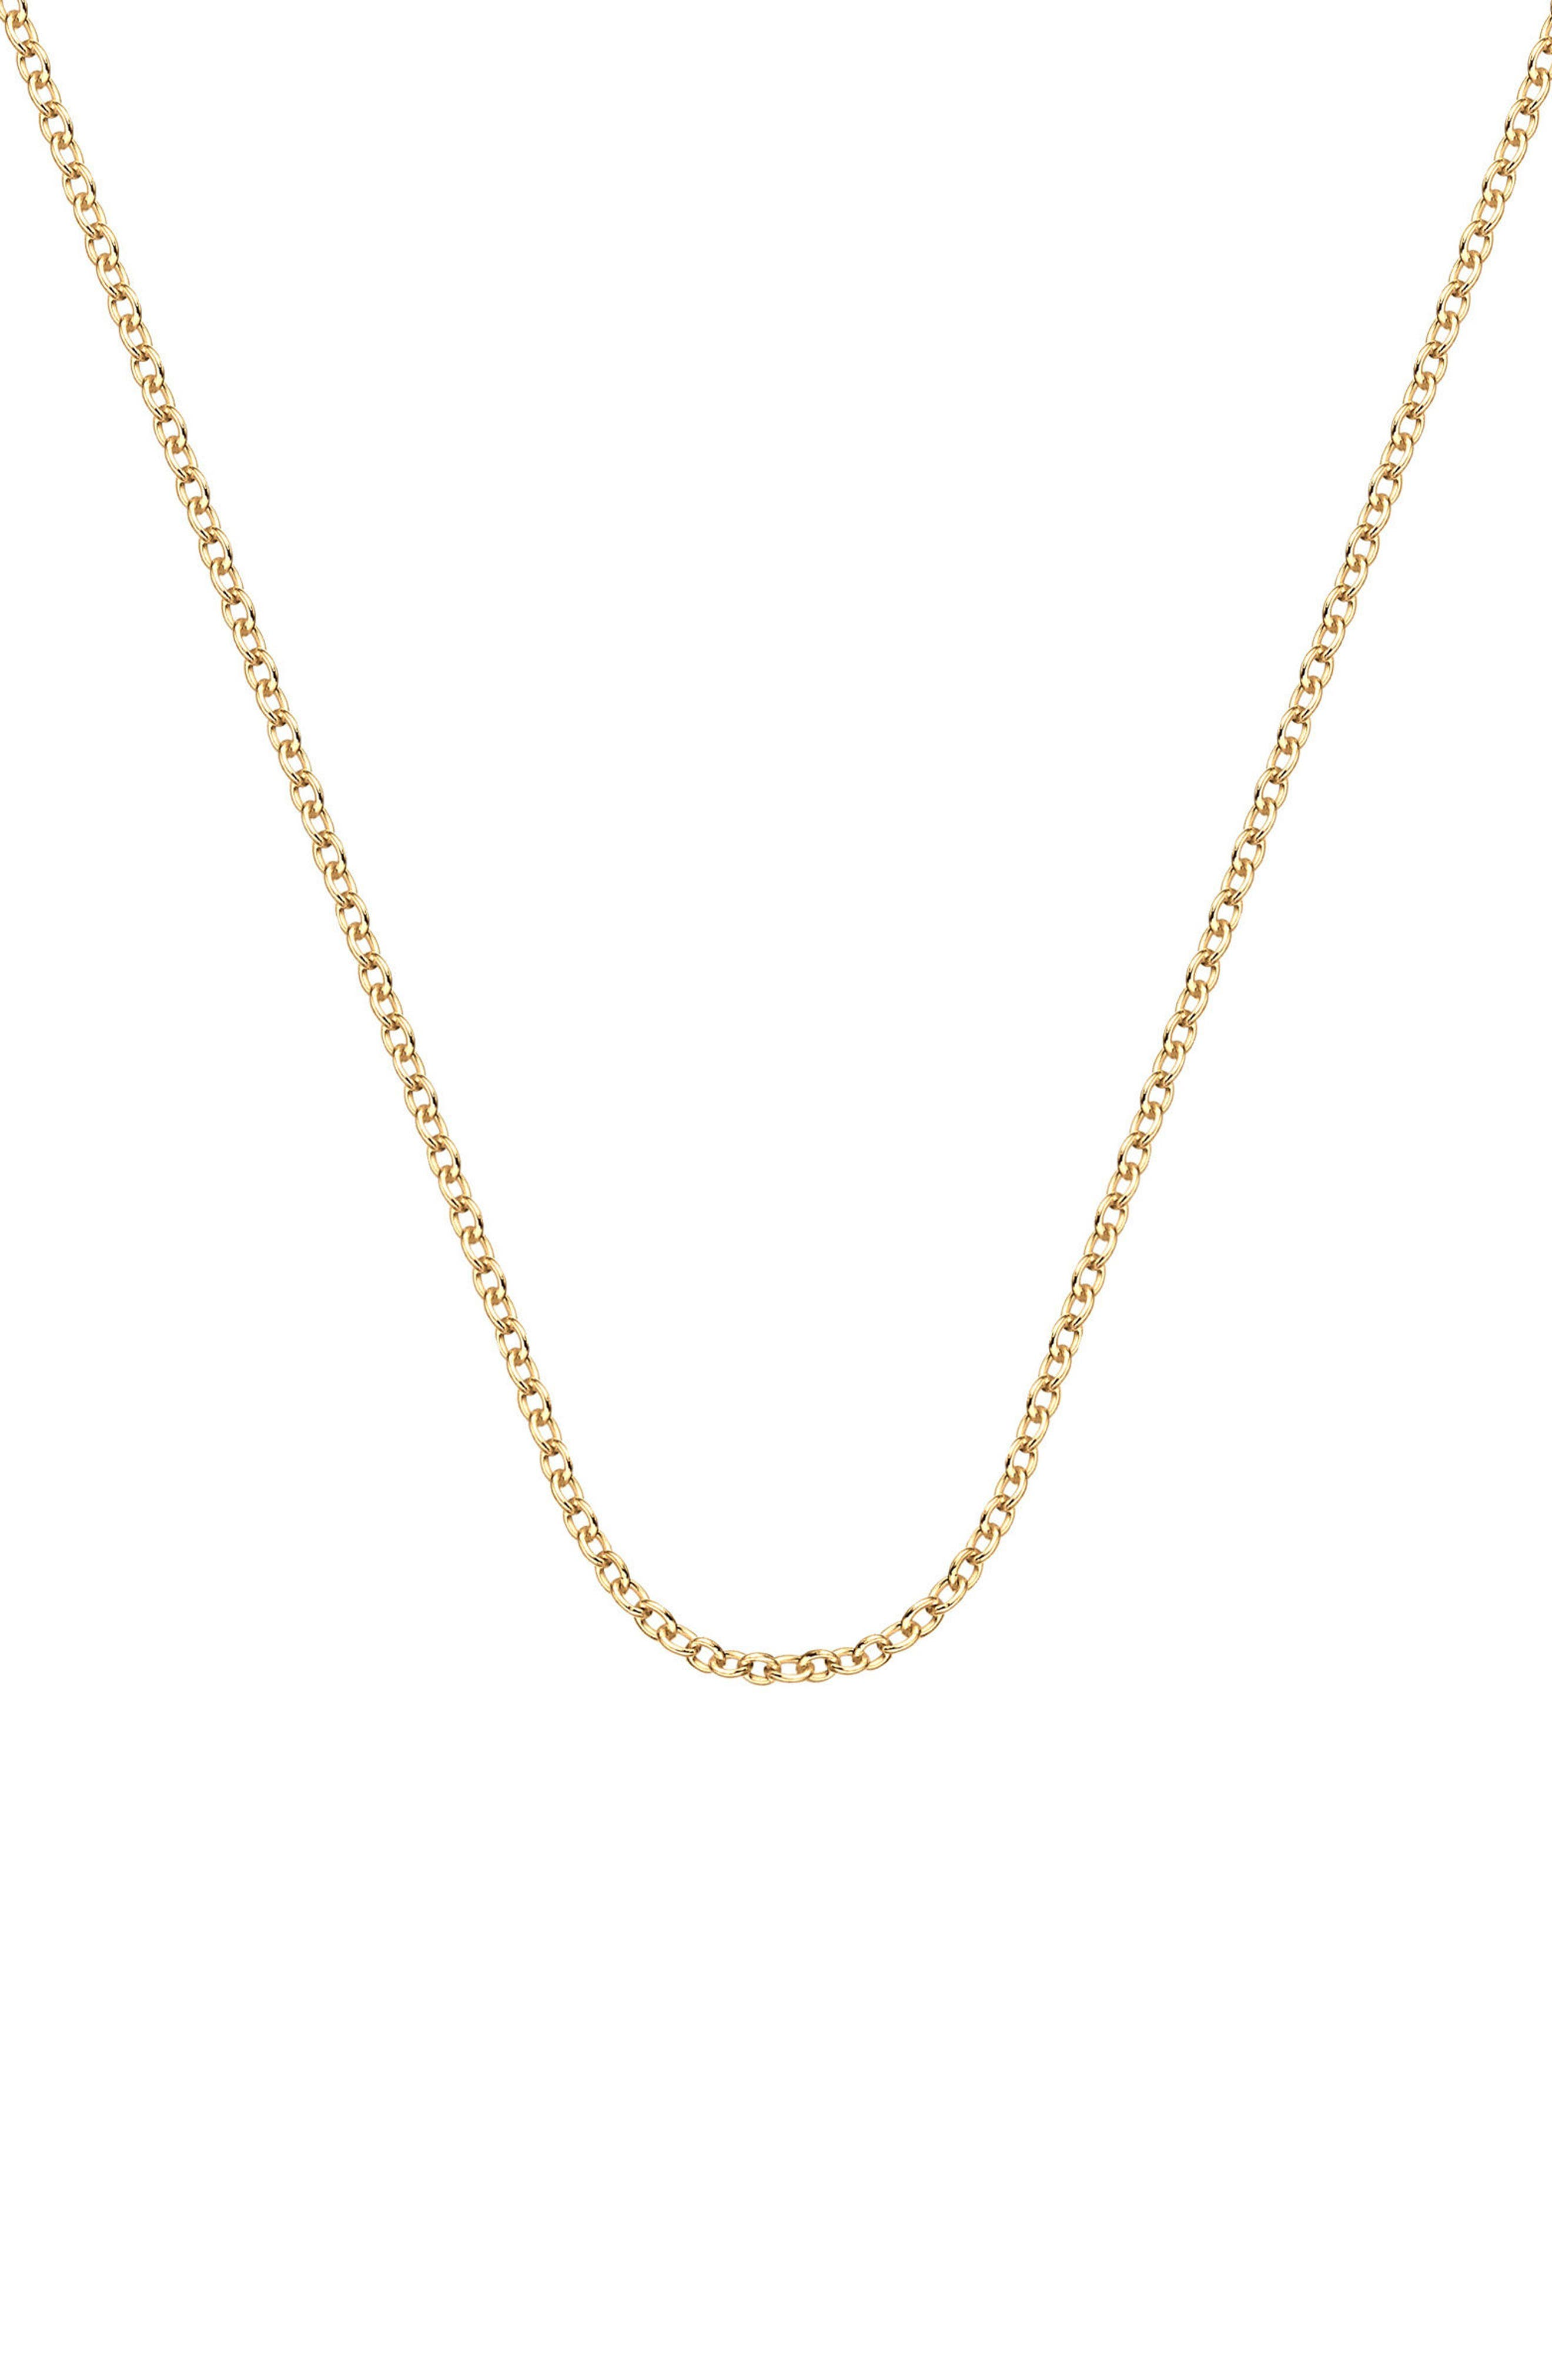 32 Inch Adjustable Rolo Chain,                             Main thumbnail 1, color,                             Yellow Gold